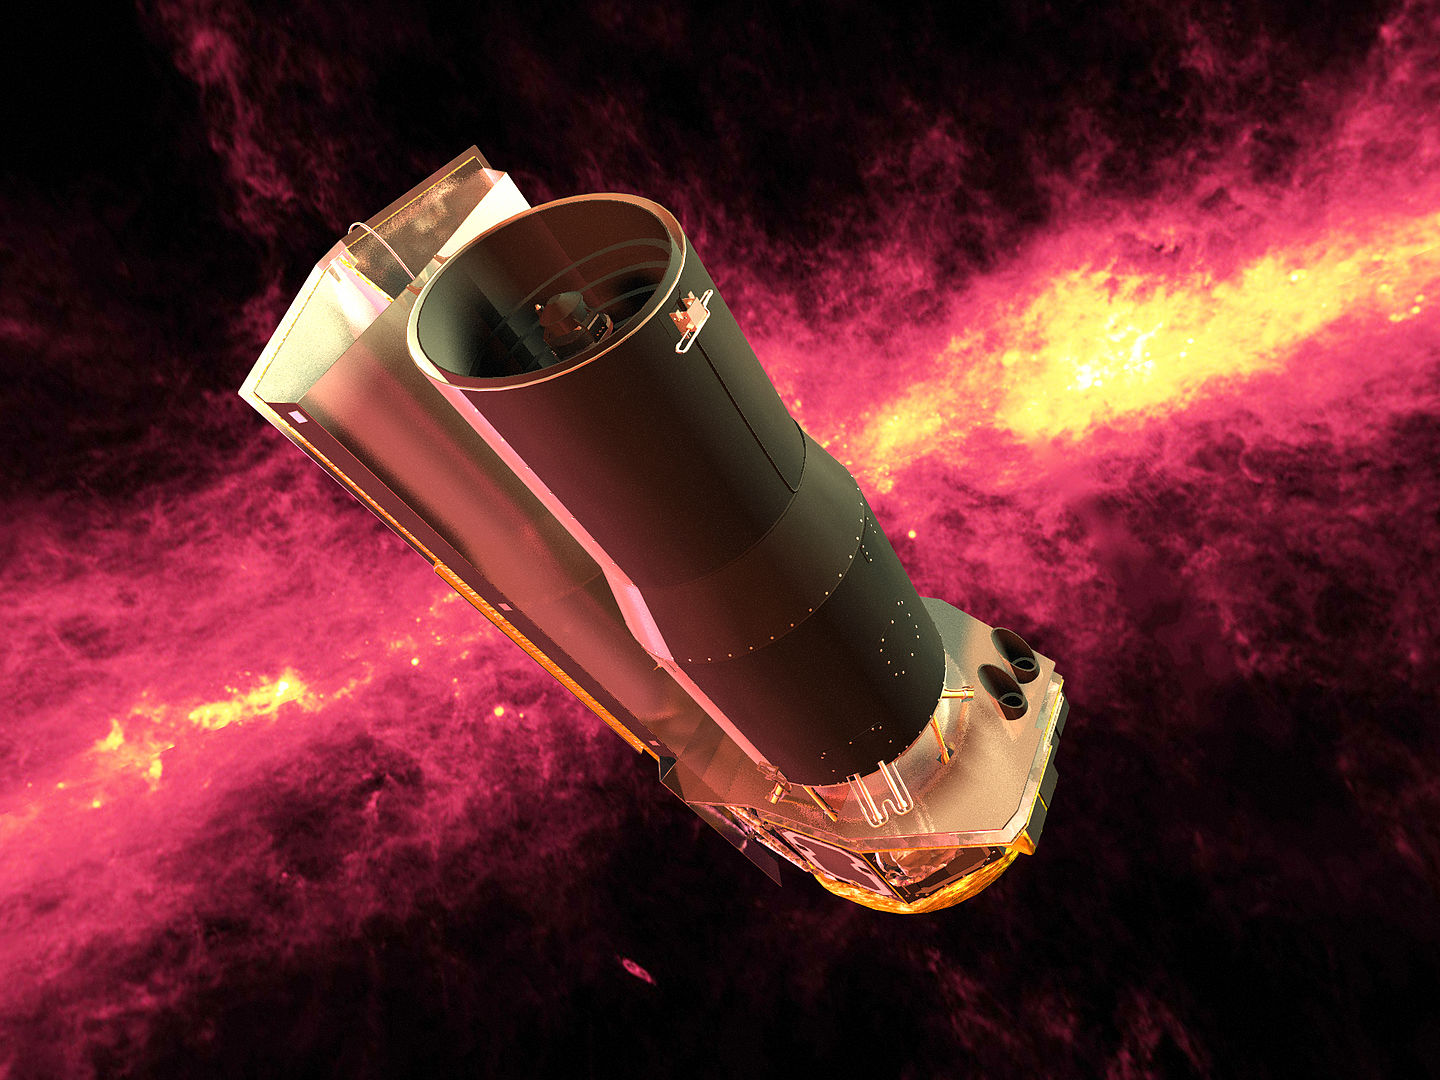 This artist's concept shows NASA's Spitzer Space Telescope in front of an infrared image of the Milky Way galaxy. Image Credit: NASA/JPL-Caltech